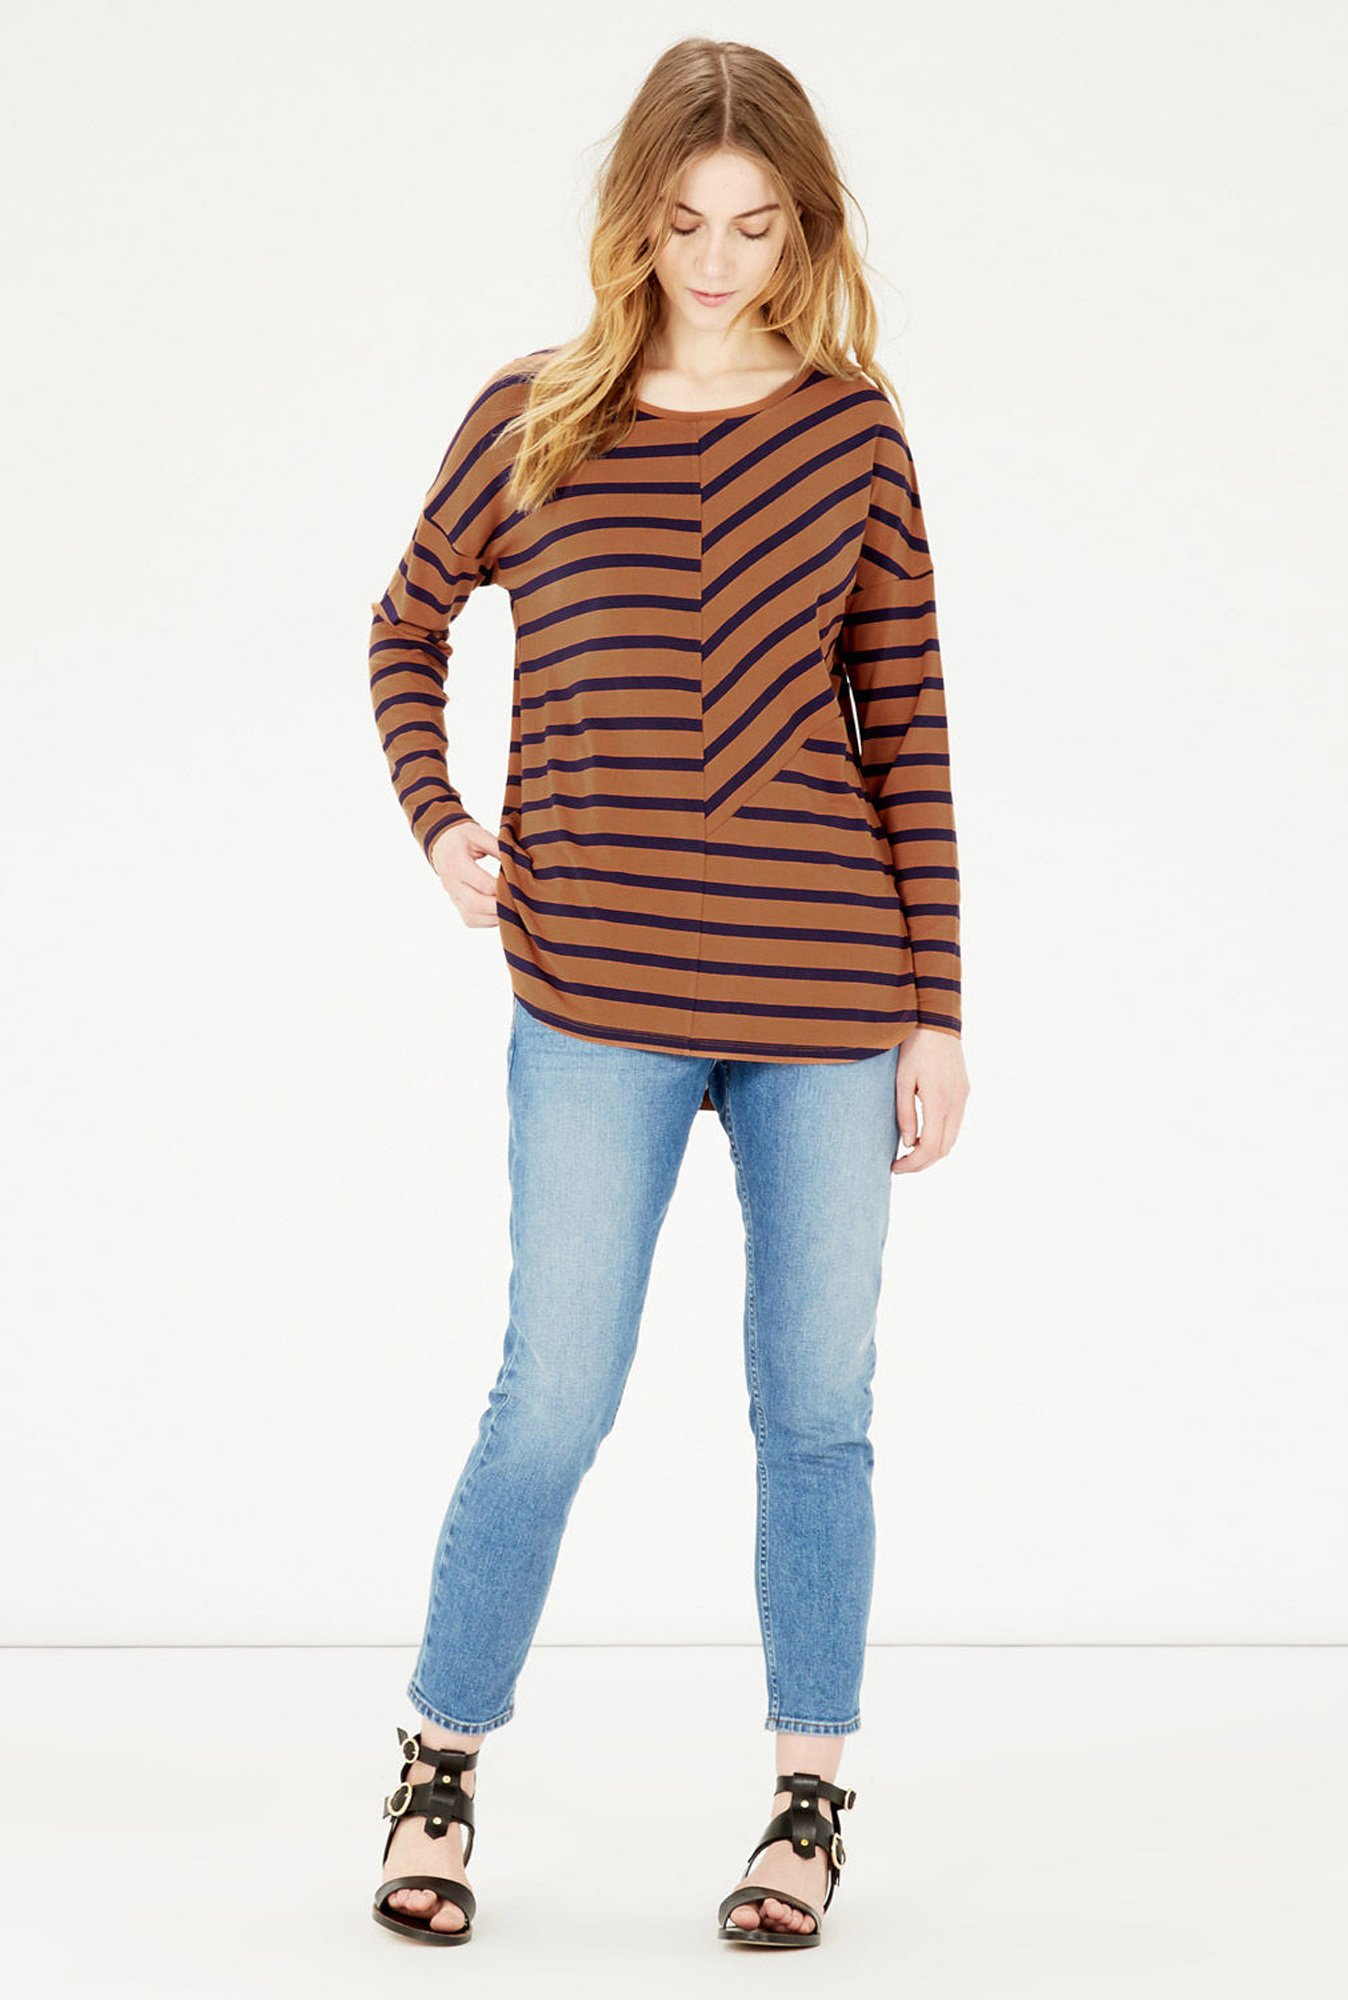 Warehouse Brown Striped Top